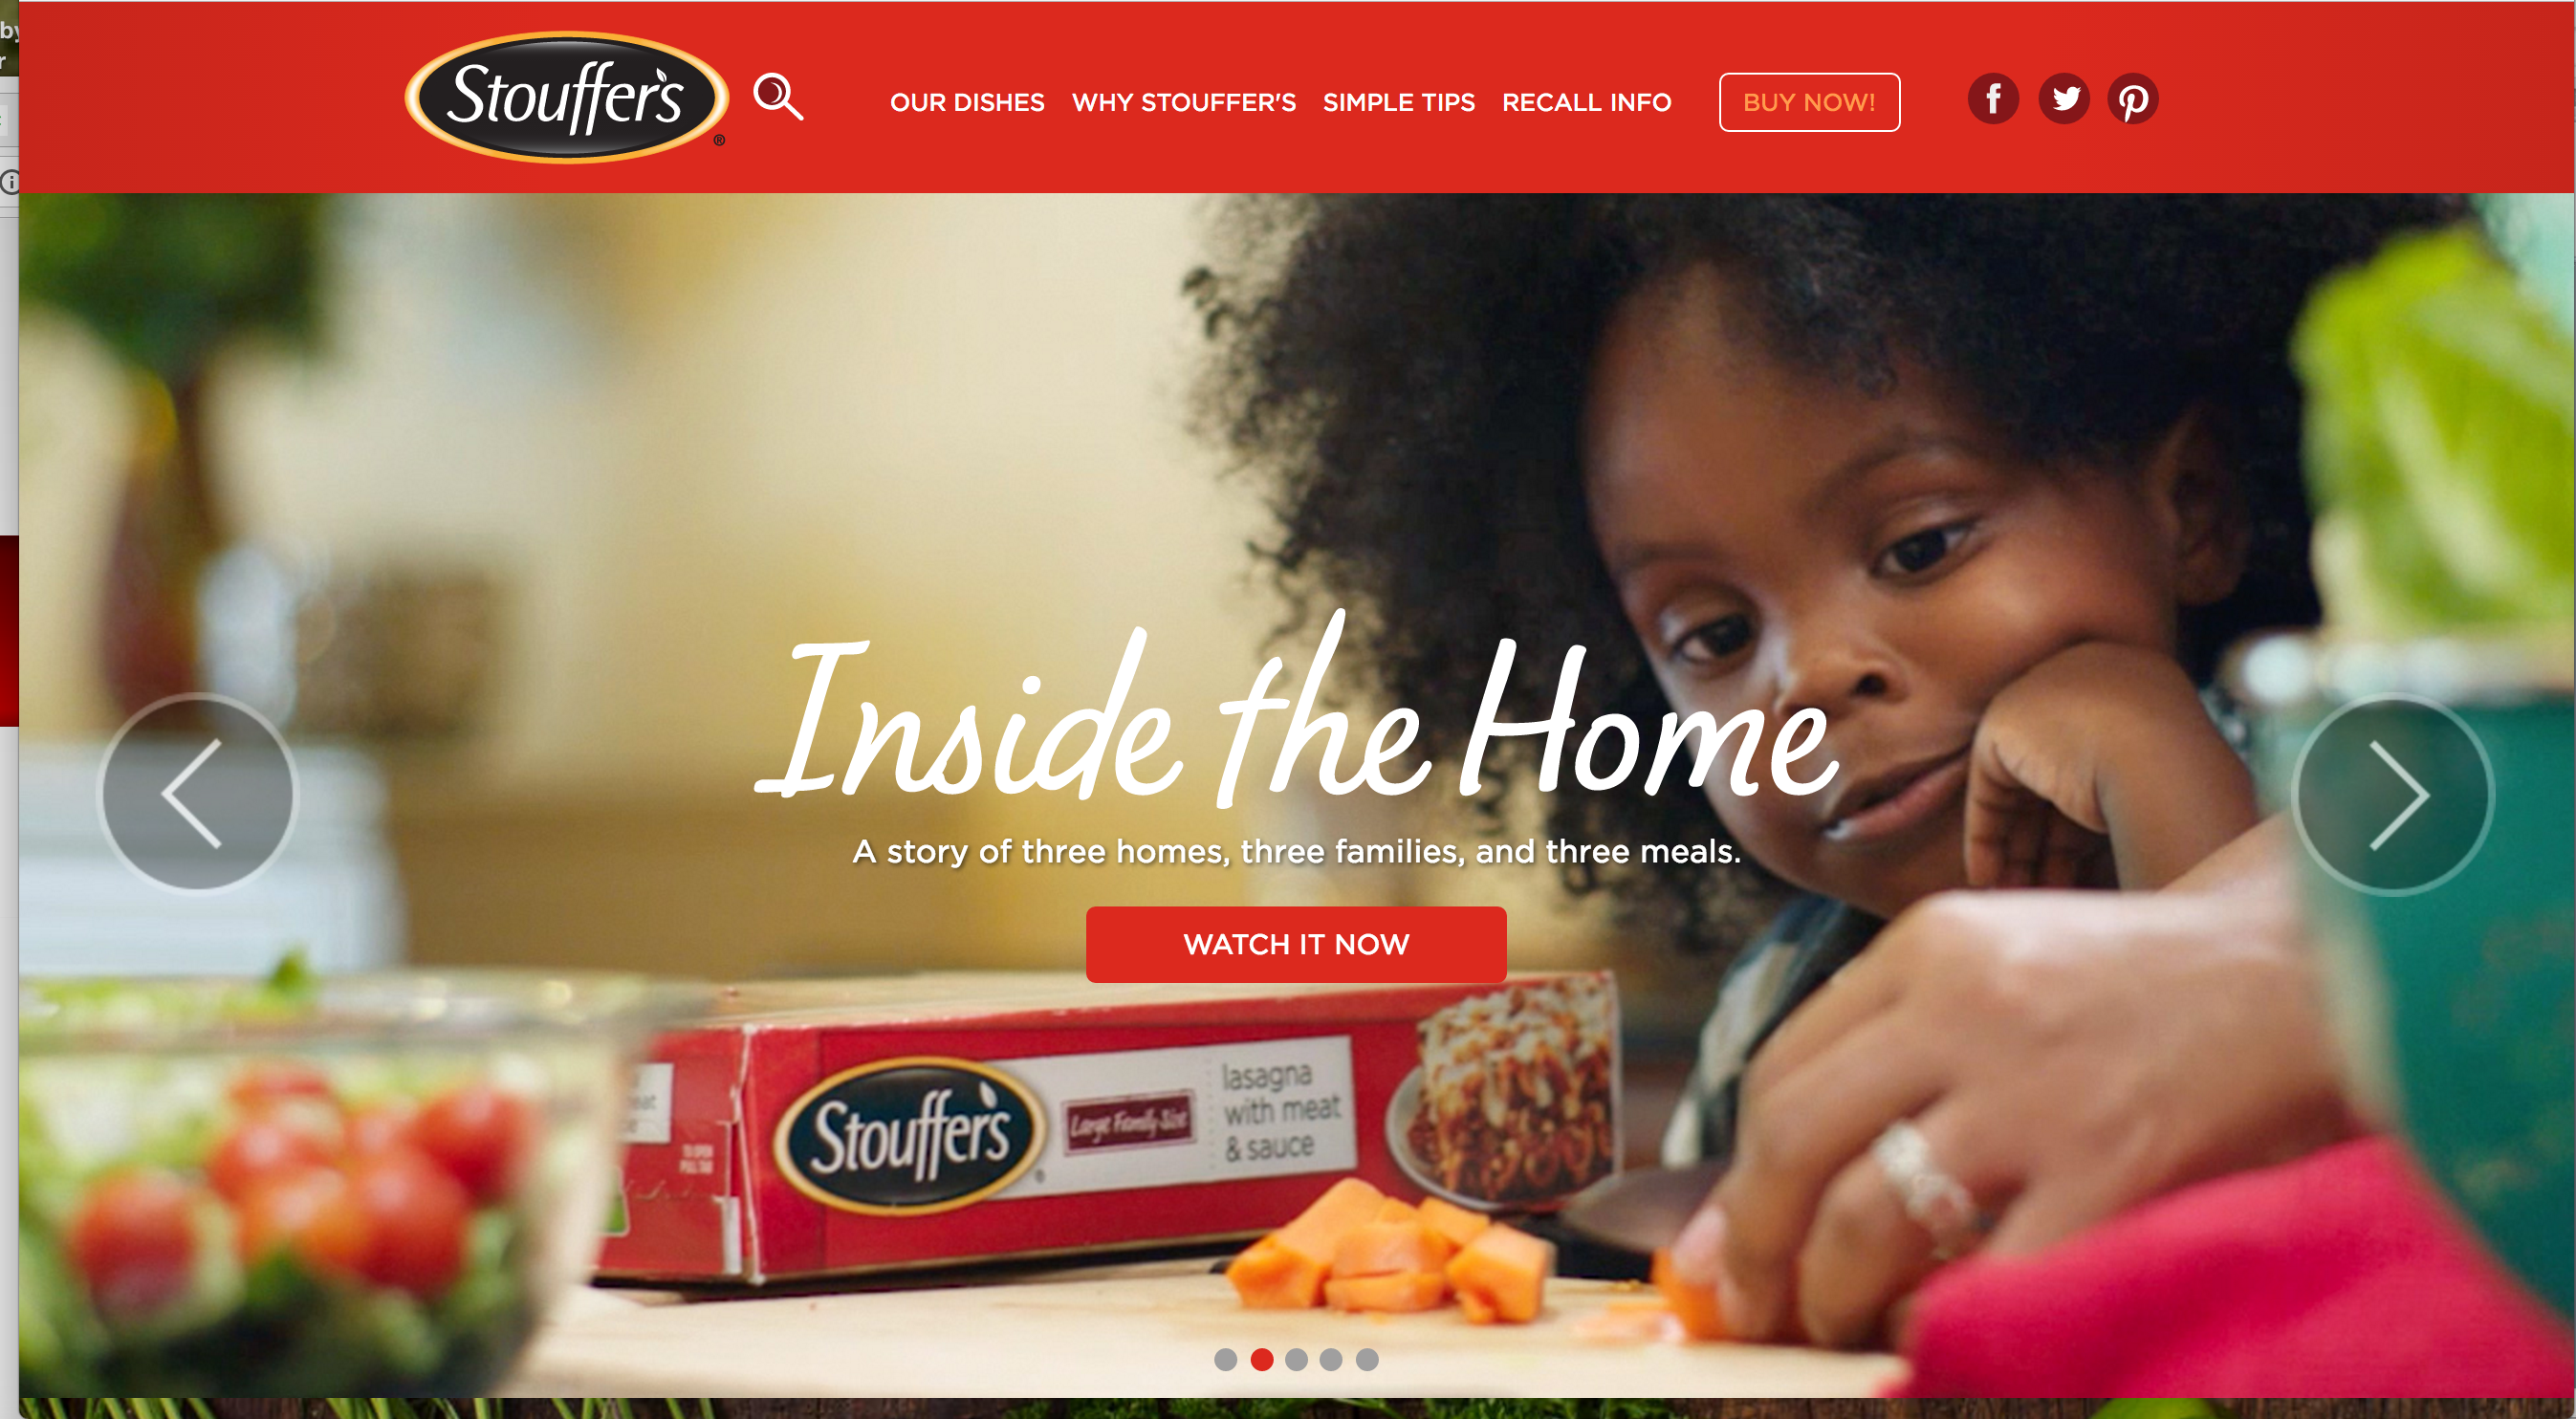 stouffers commercial- black family stuffers- heros welcome stouffers- stouffers inside the home- stouffers army commercial- stouffers natural hair- stouffers army family- stouffers family commercial